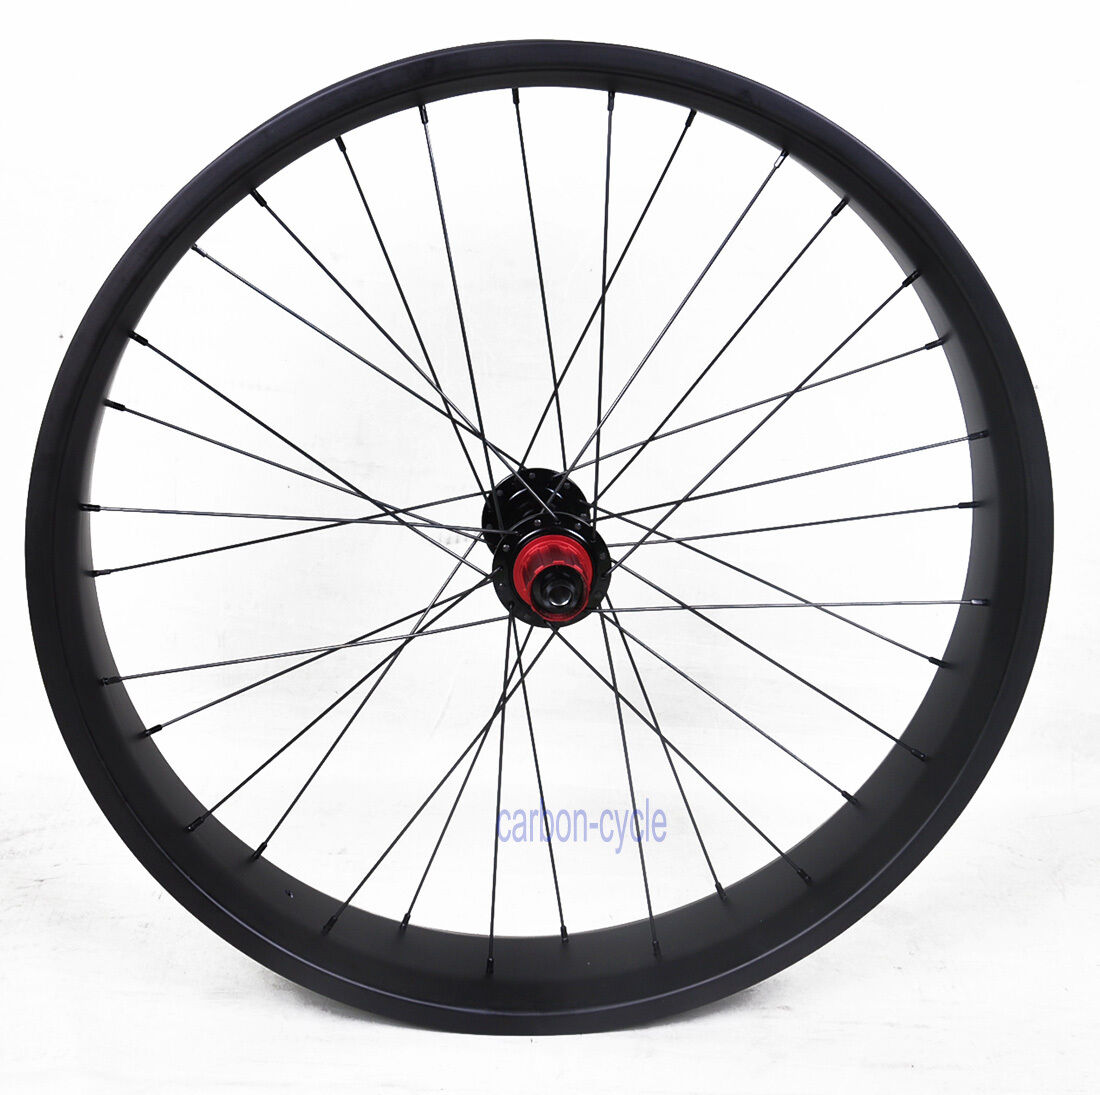 100mm 26er Carbon Fat Bike Rear Wheel Clincher MTB Thru Axle QR UD Matt Rim 4.8